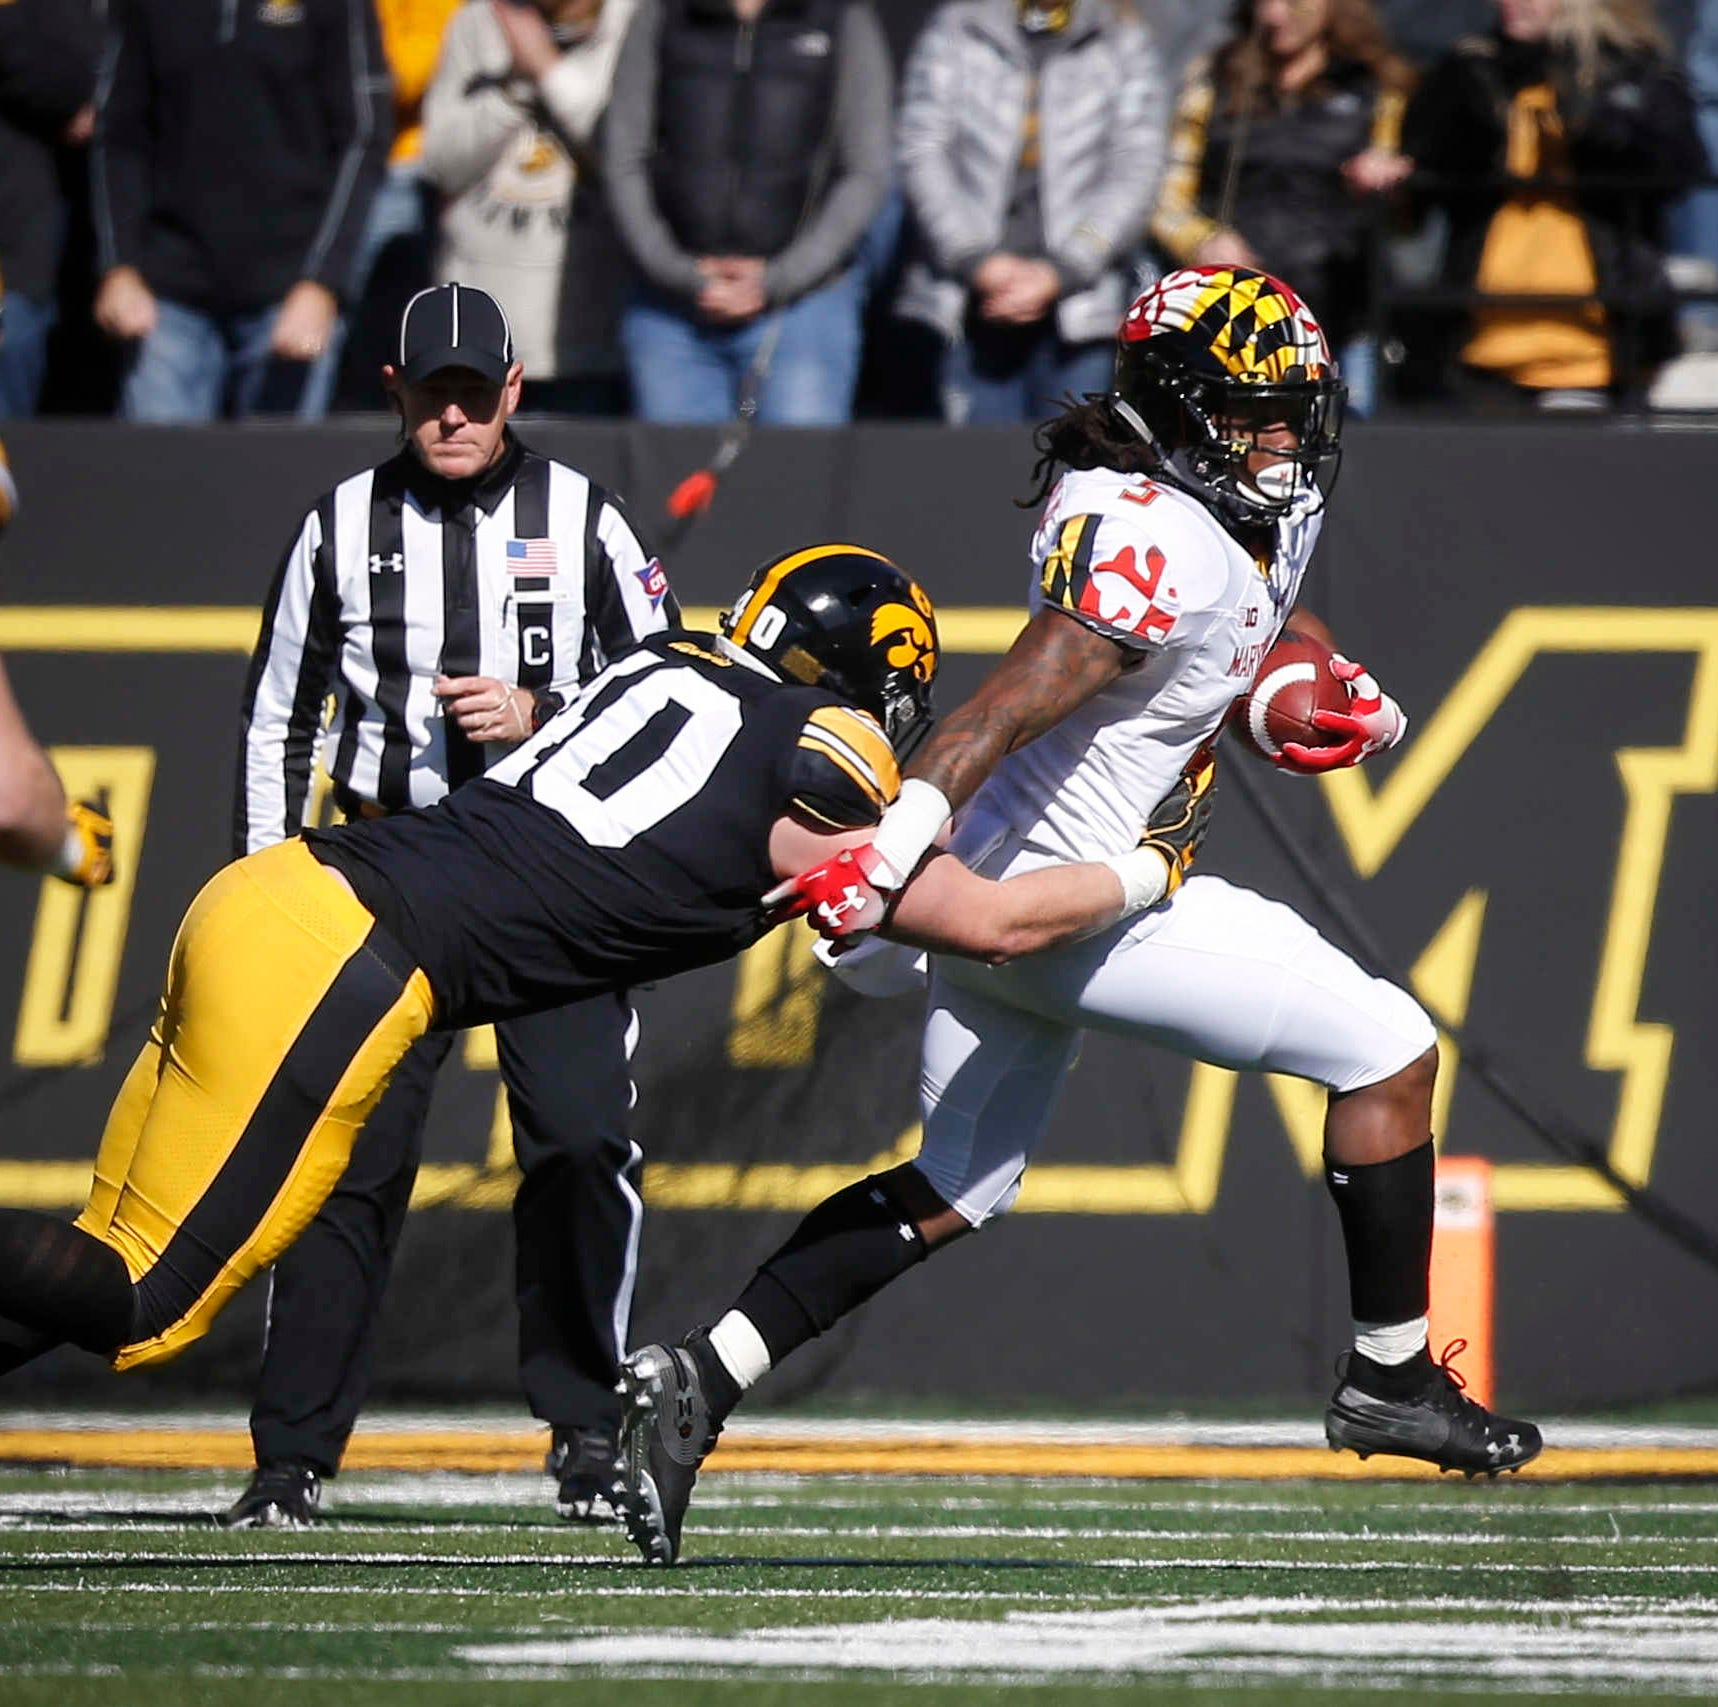 Iowa's Parker Hesse catches Maryland running back Anthony McFarland for a loss on Saturday, Oct. 20, 2018, at Kinnick Stadium in Iowa City.